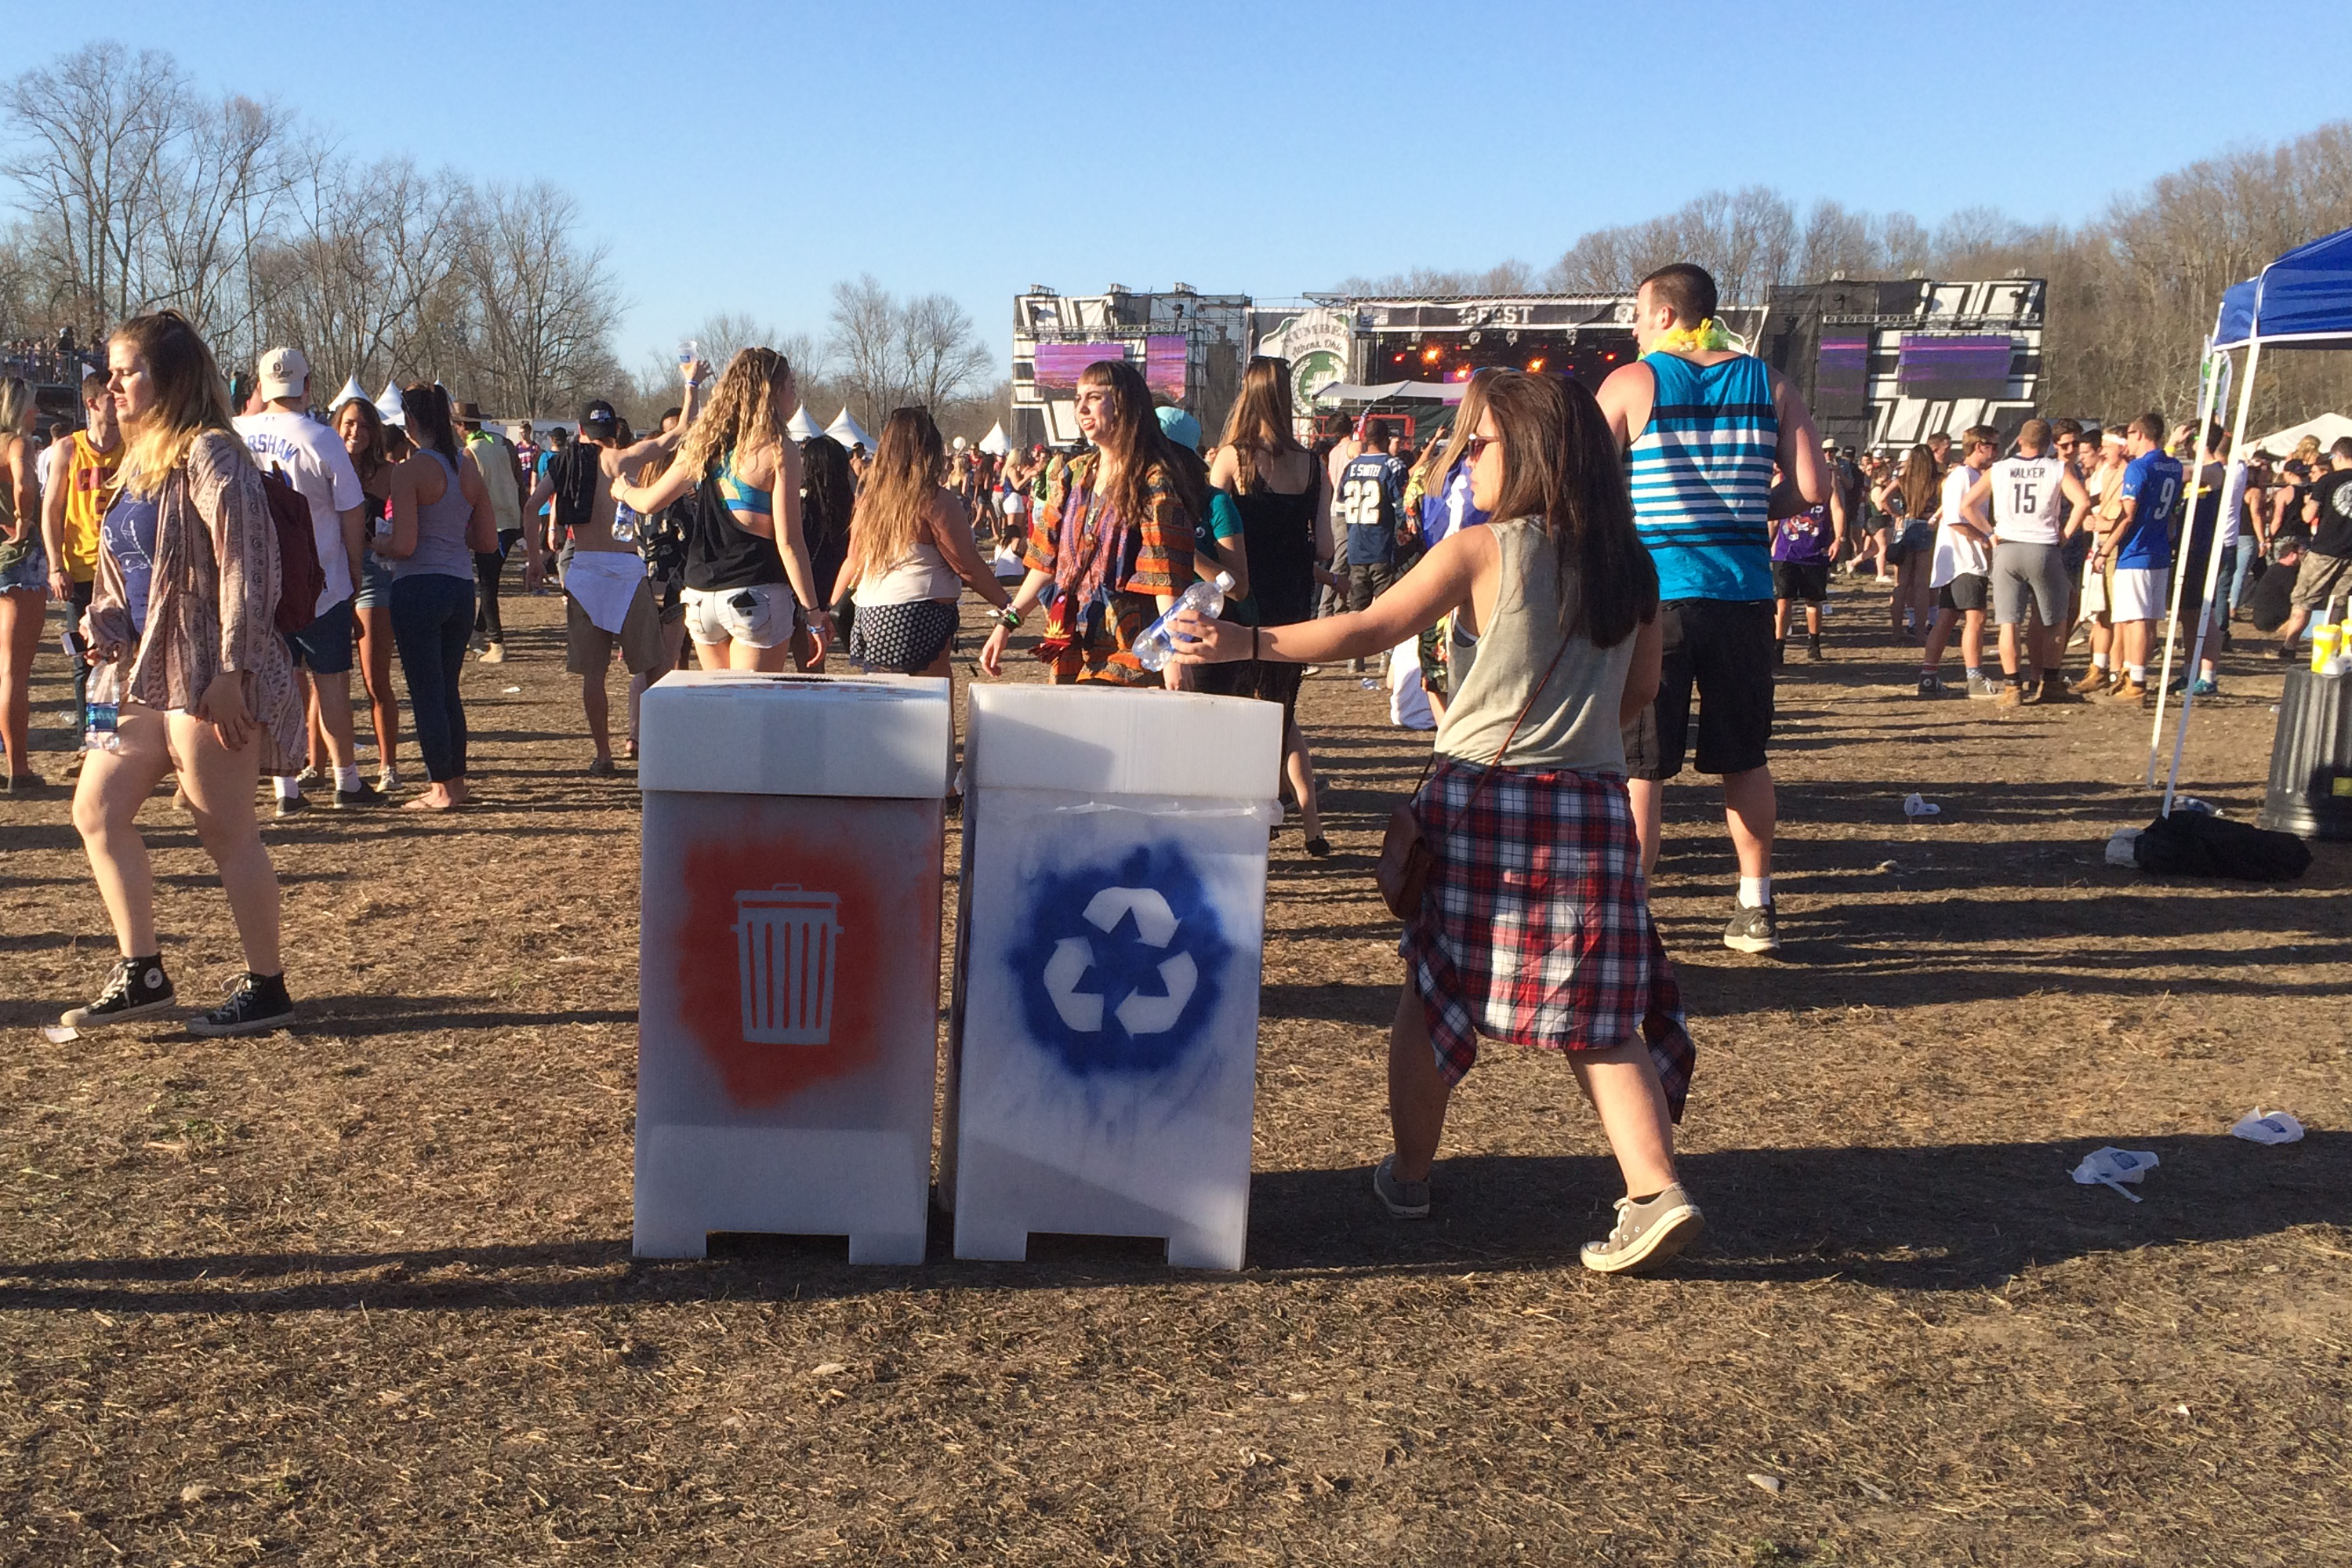 A young woman recycles her water bottle at #Fest 2016.